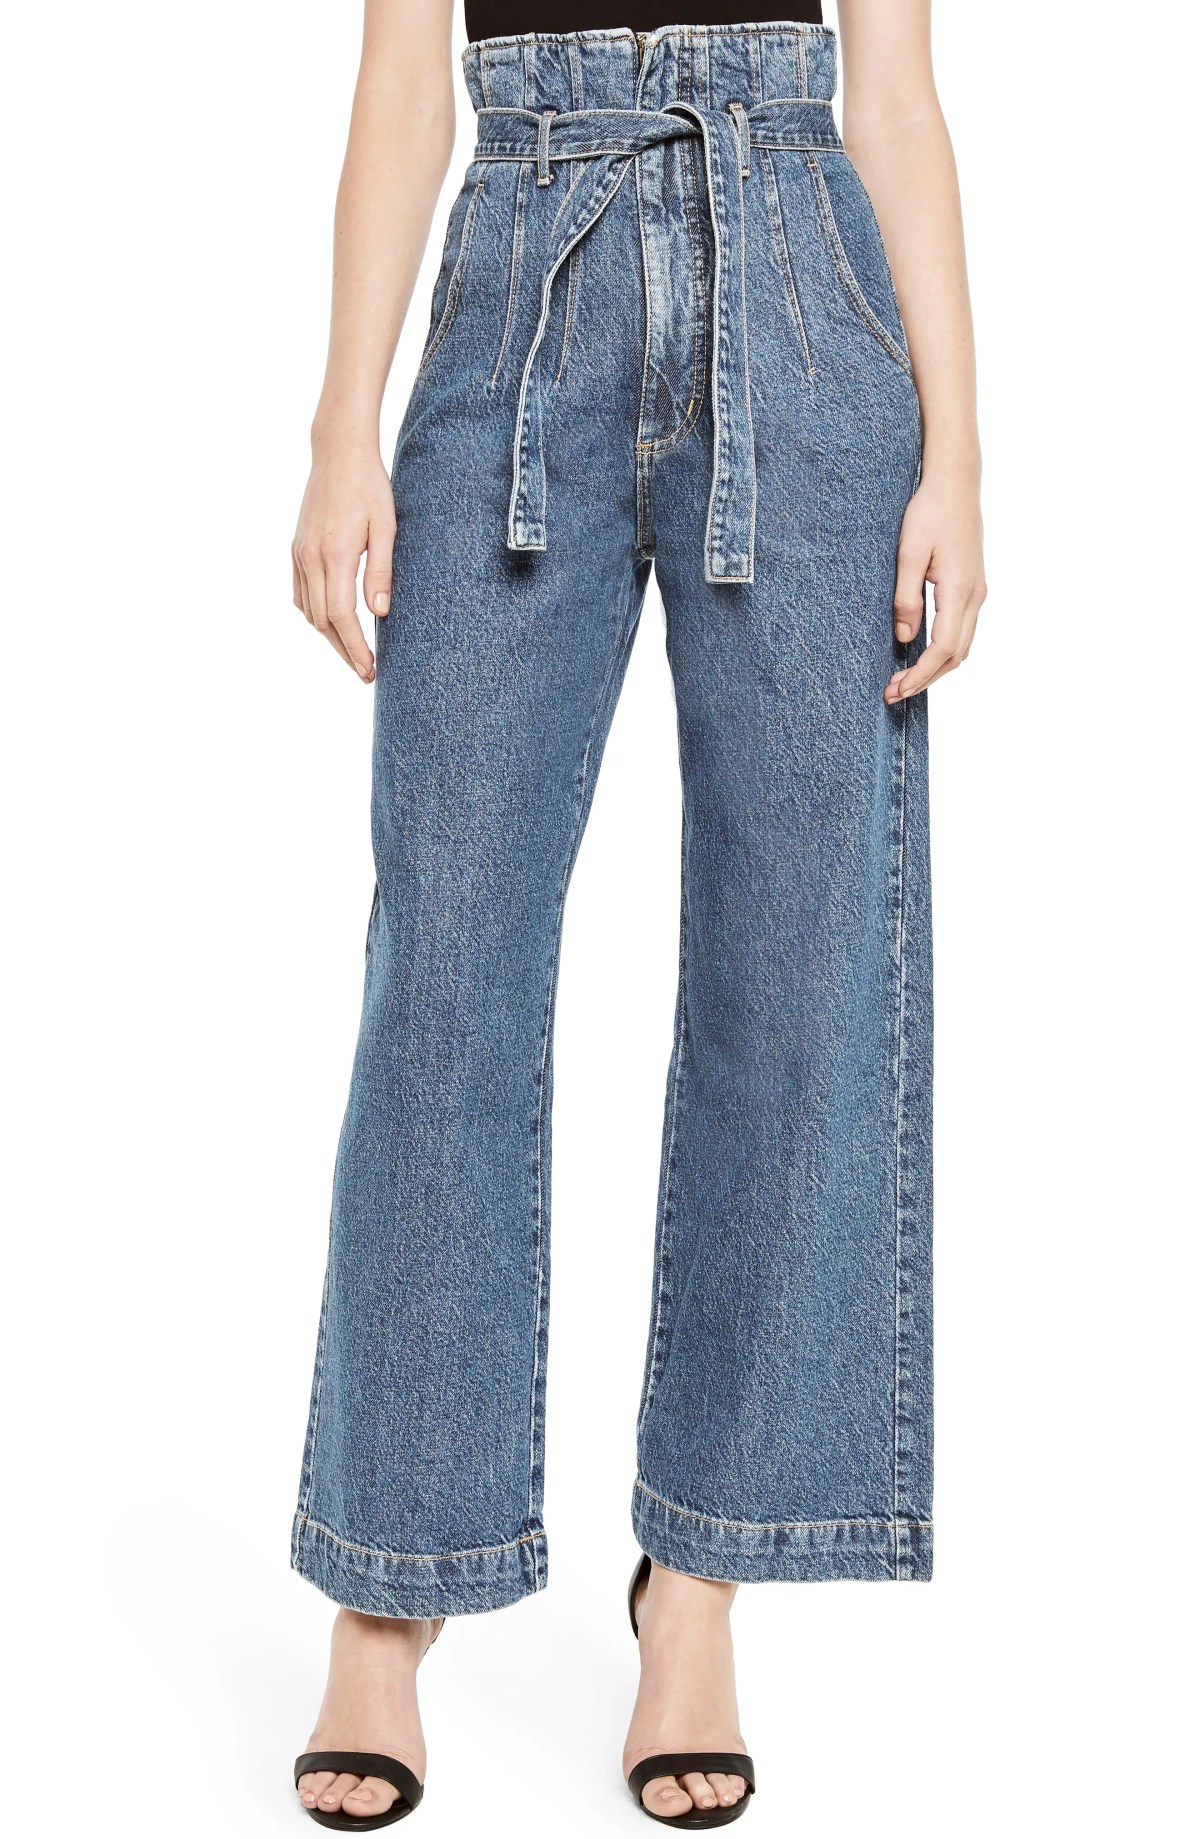 BARDOT Paperbag Wide Leg Jeans, Main, color, VINTAGE